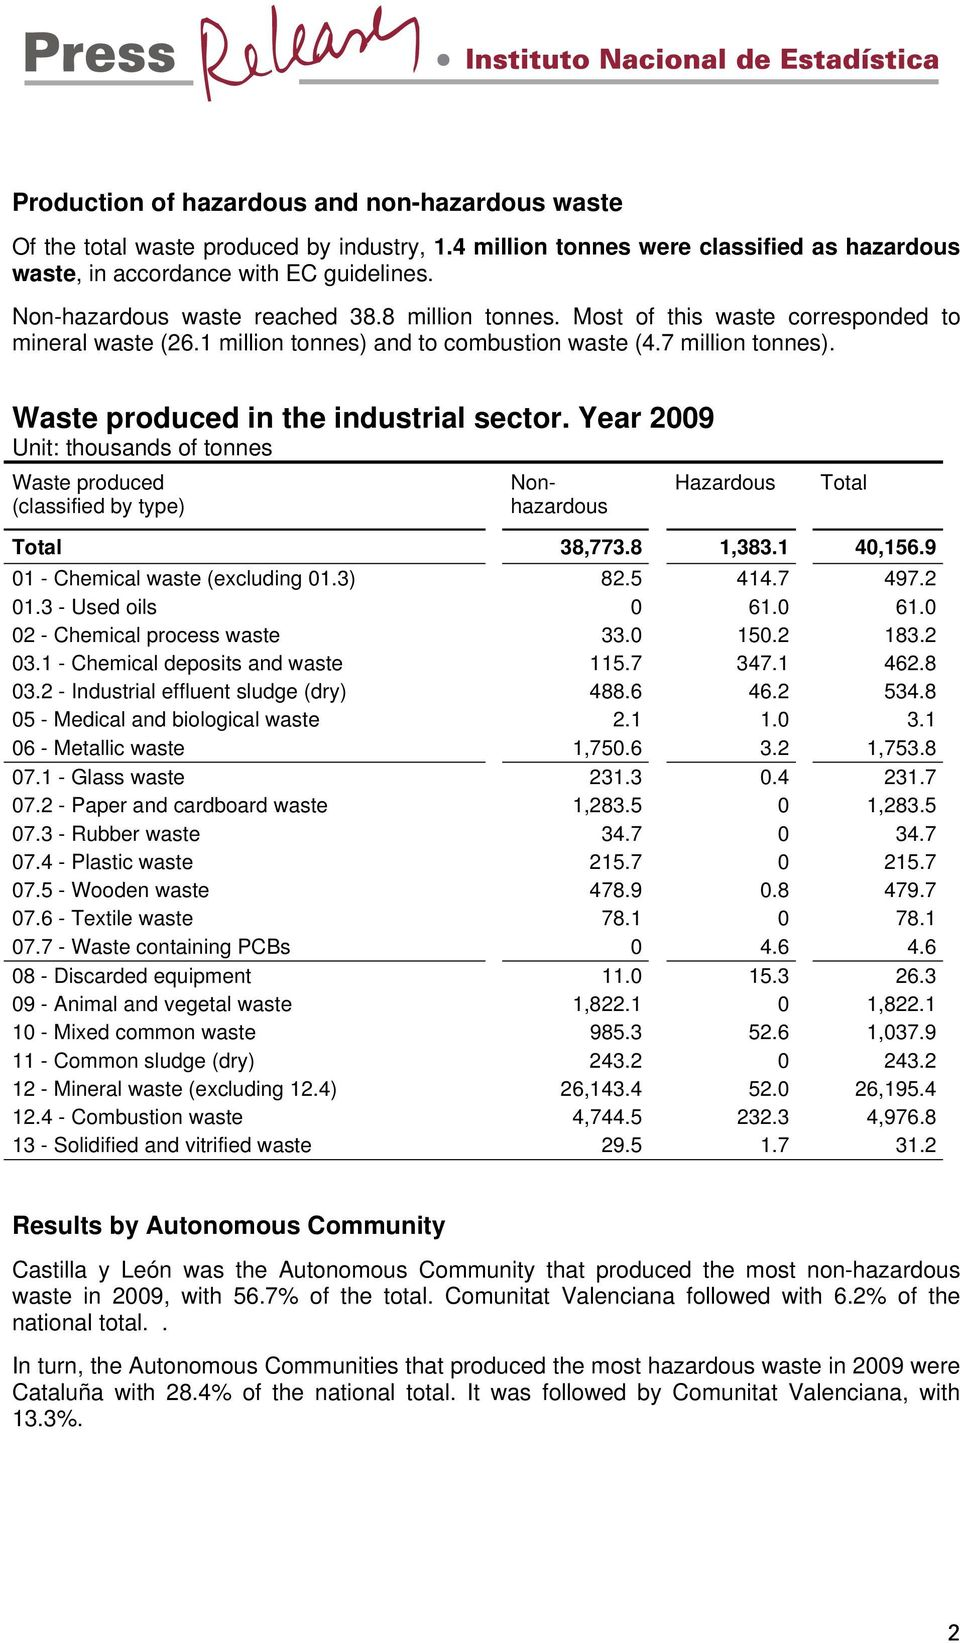 Year 2009 38,773.8 1,383.1 40,156.9 01 - Chemical waste (excluding 01.3) 82.5 414.7 497.2 01.3 - Used oils 0 61.0 61.0 02 - Chemical process waste 33.0 150.2 183.2 03.